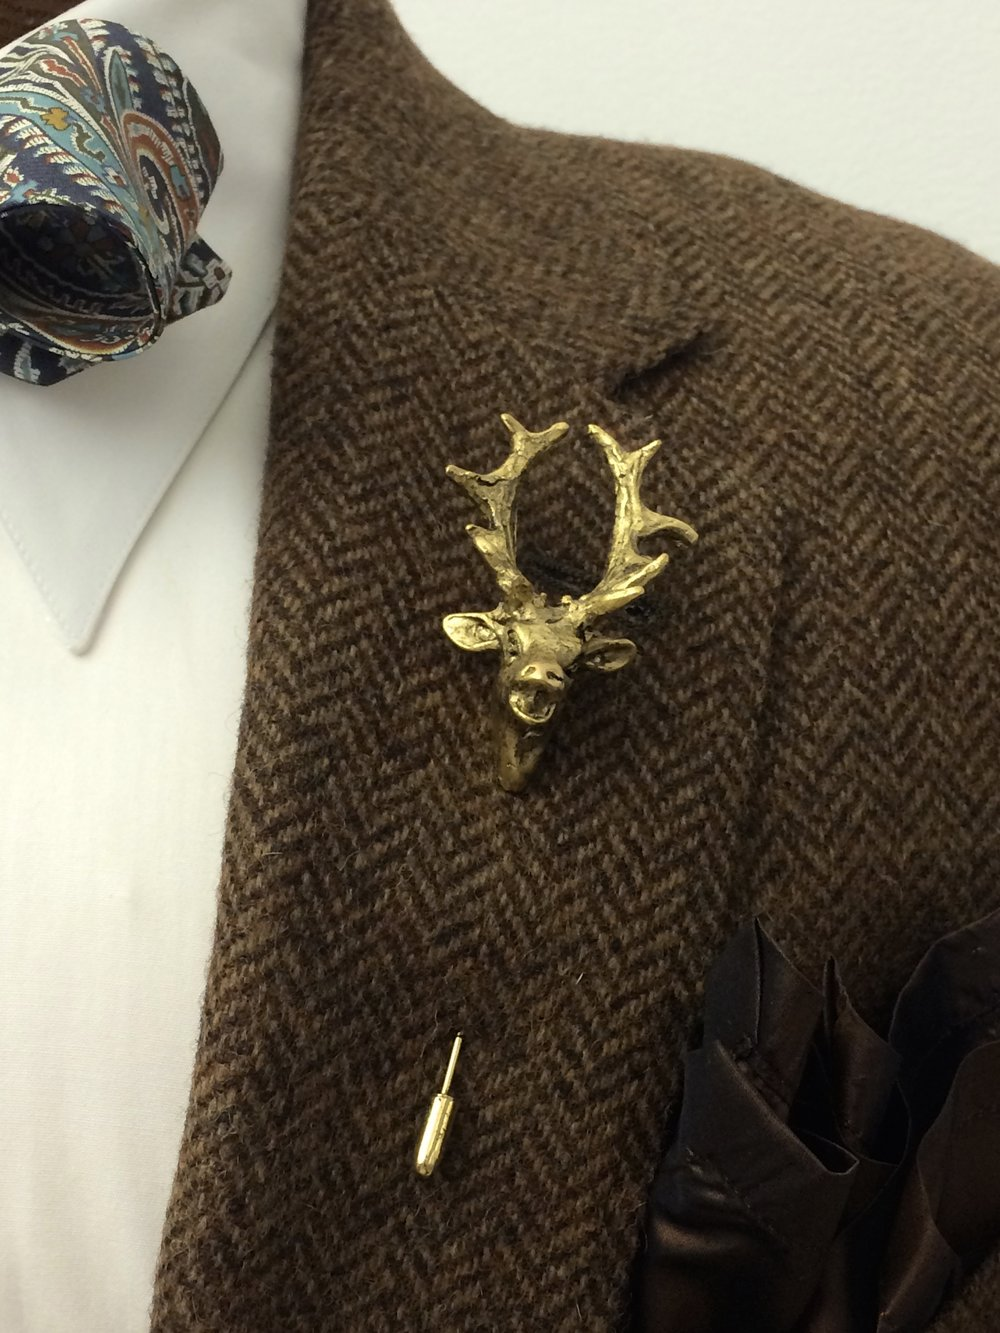 STAG PIN available in Antique Gold and Antique Silver